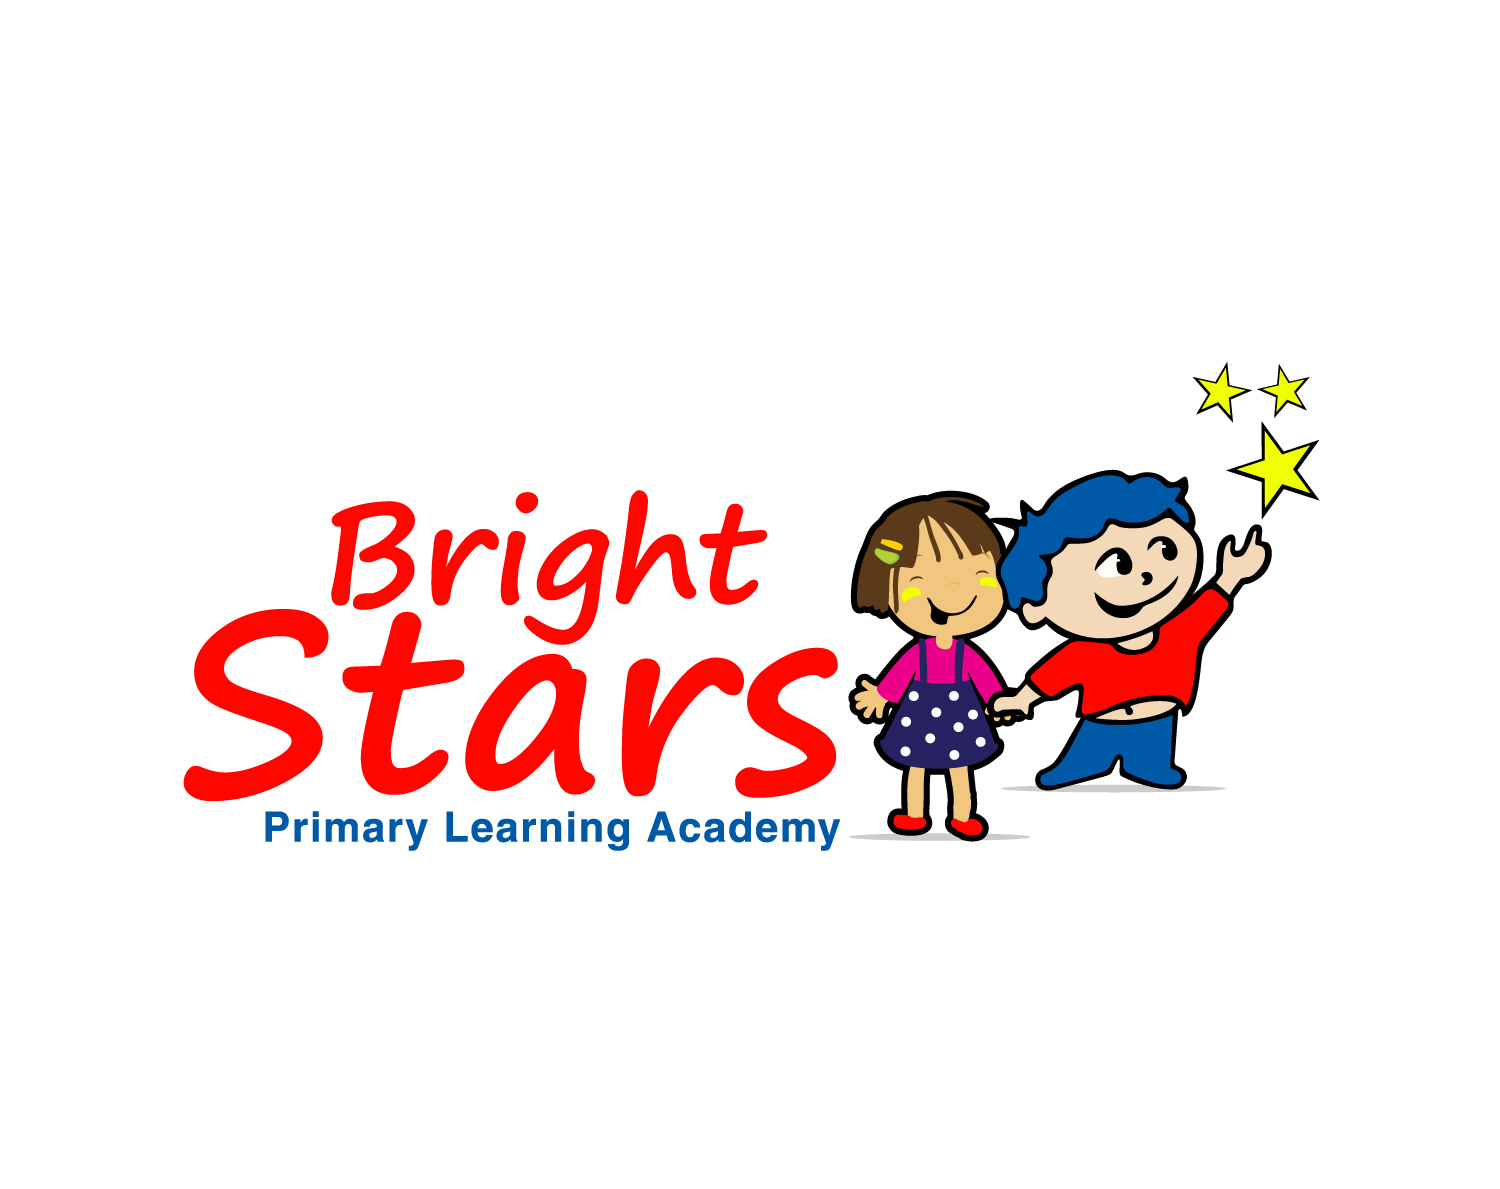 Bright Stars Primary Learning Academy, LLC